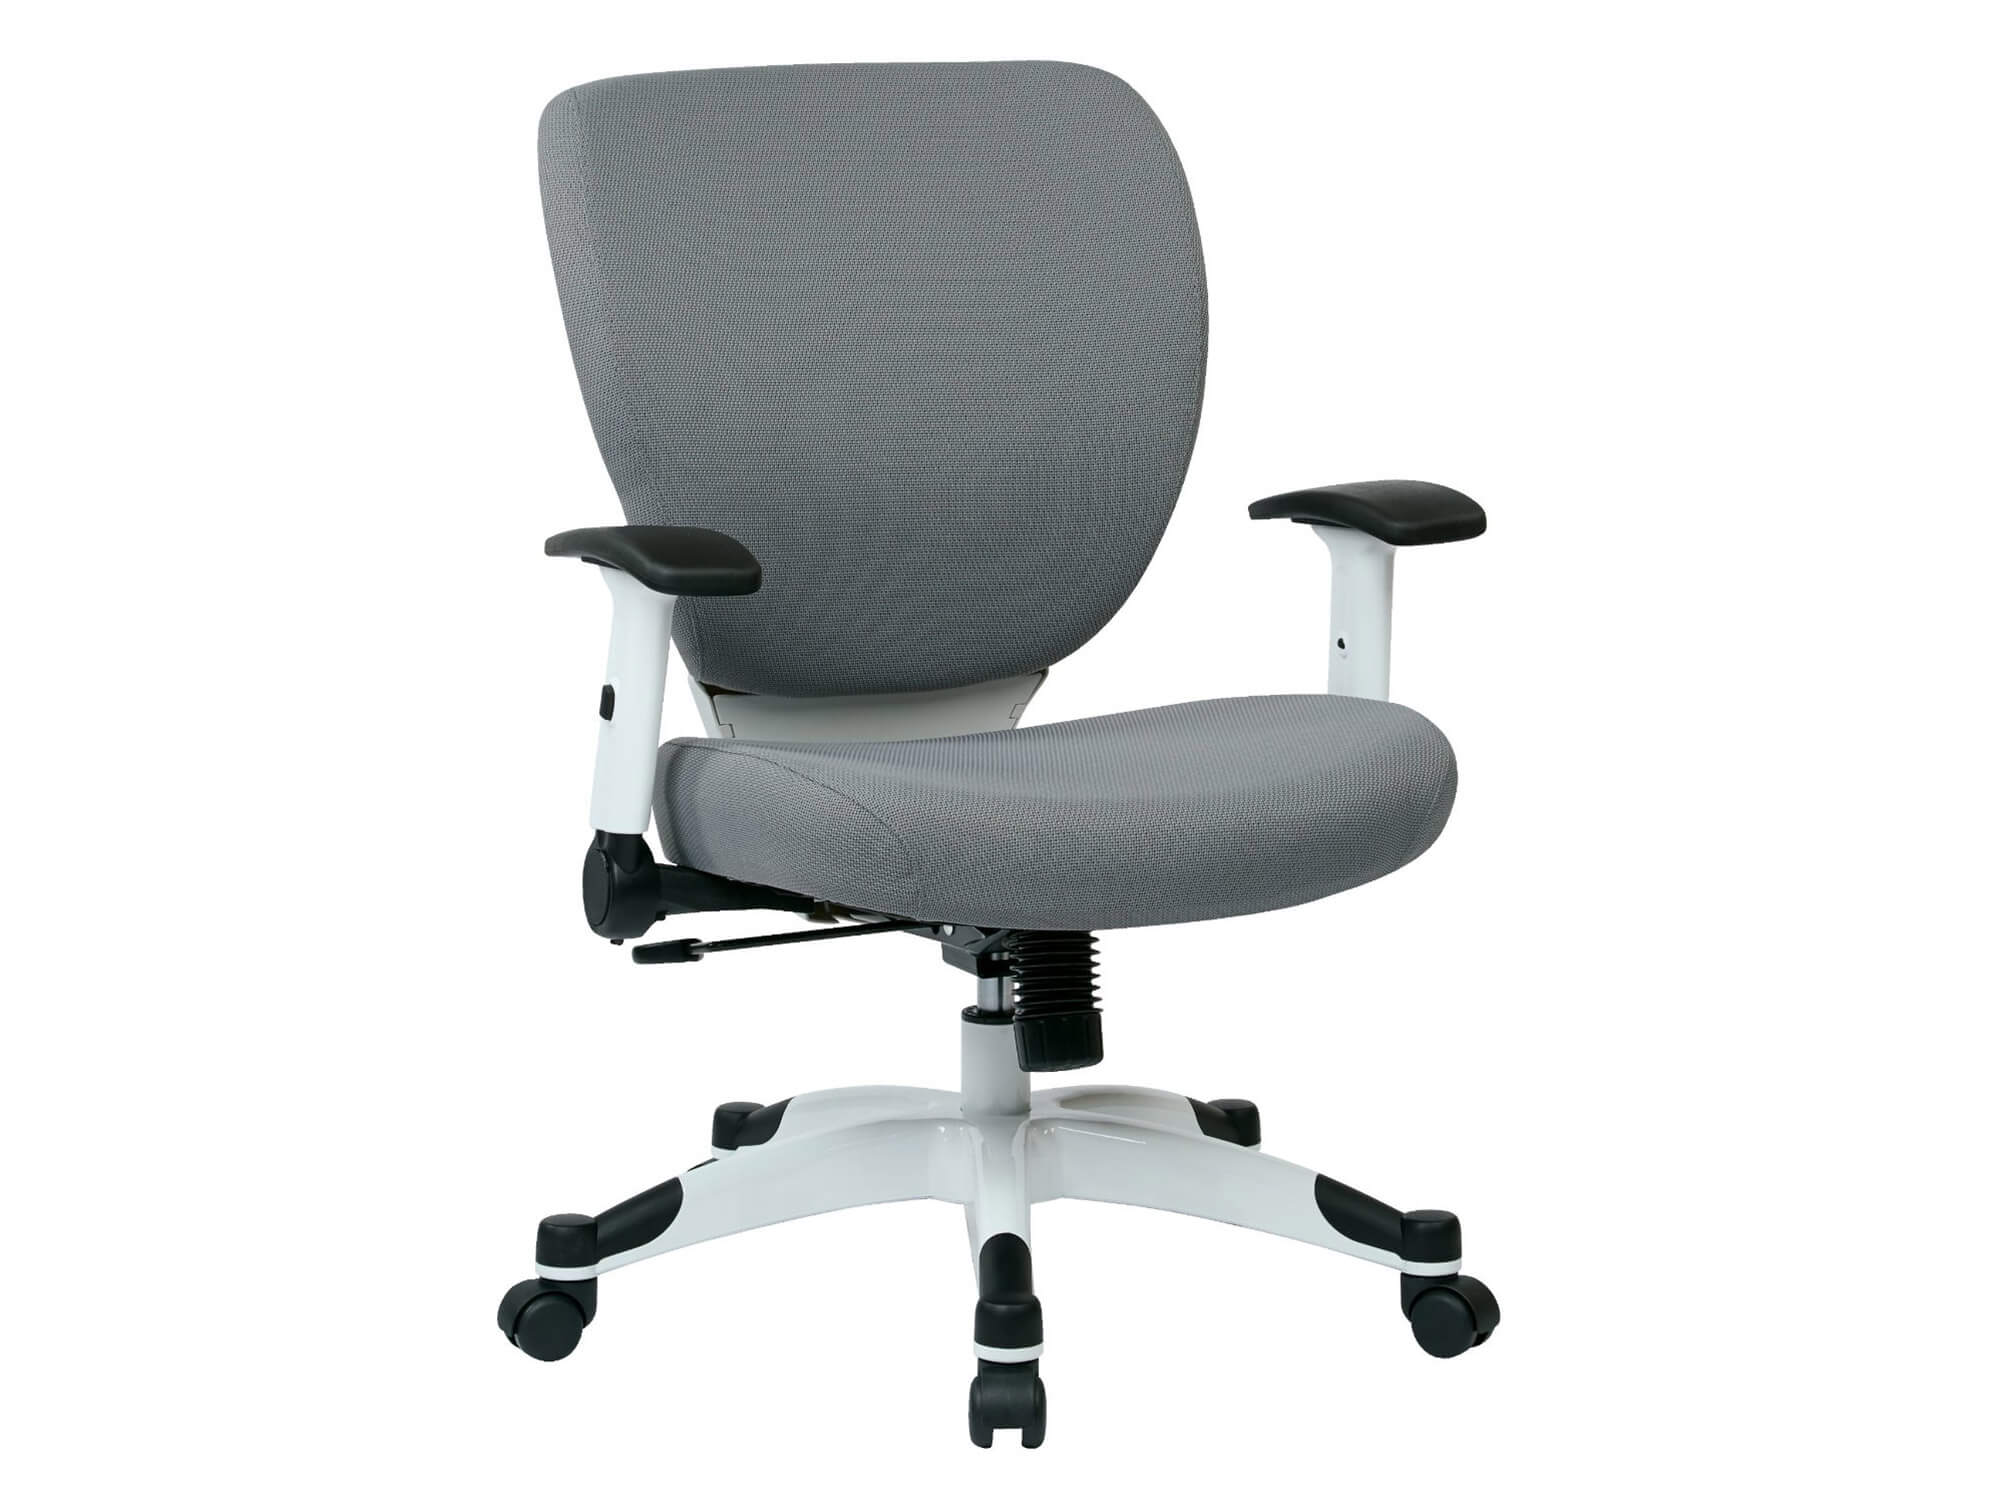 Office task chairs CUB 5200W 5811 PSO